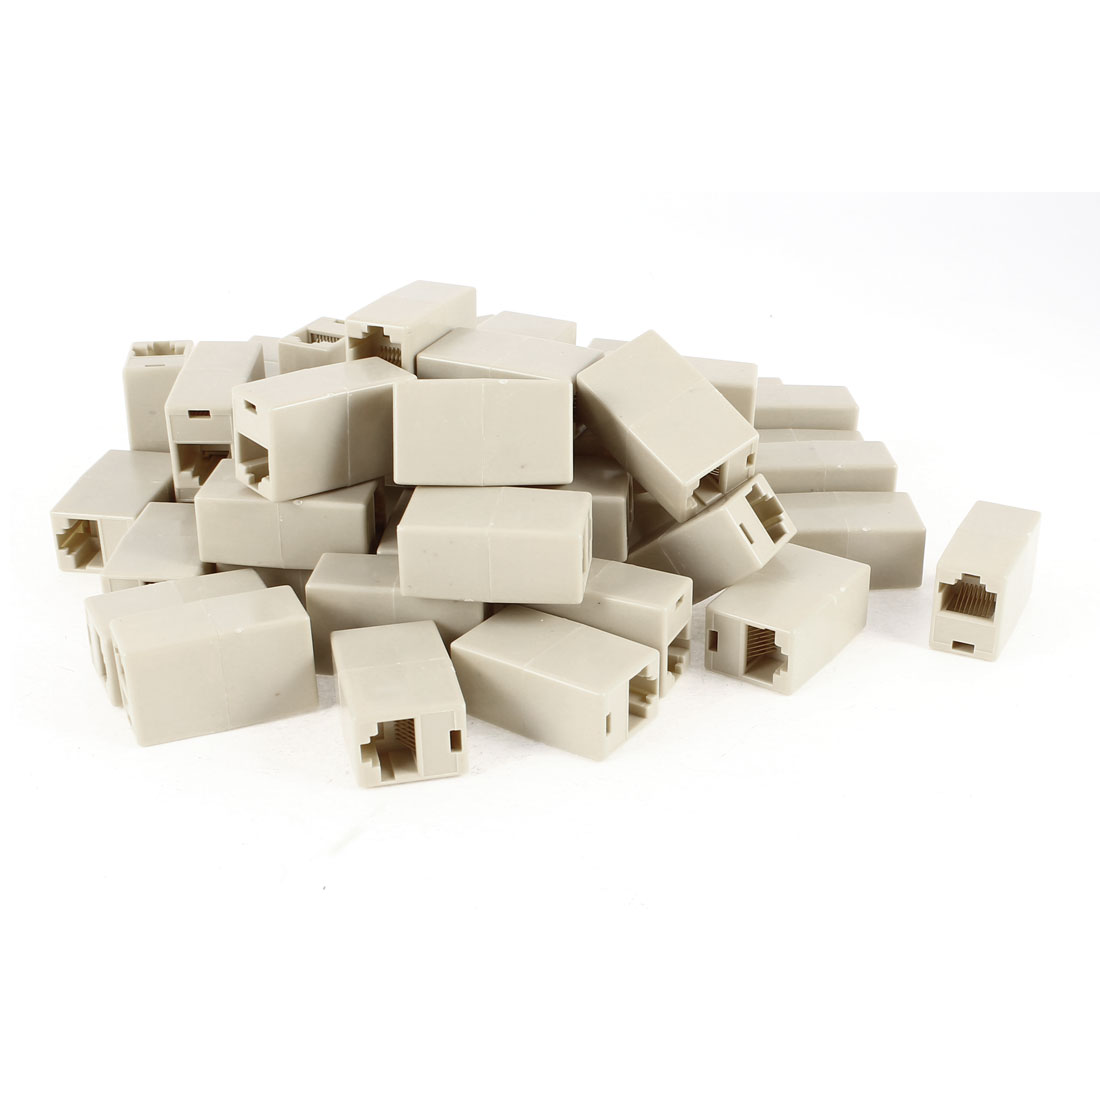 50 Pcs Beige 8P8C RJ45 Female Cat5 Ethernet Network Cable Connector Joiner Adapter Coupler